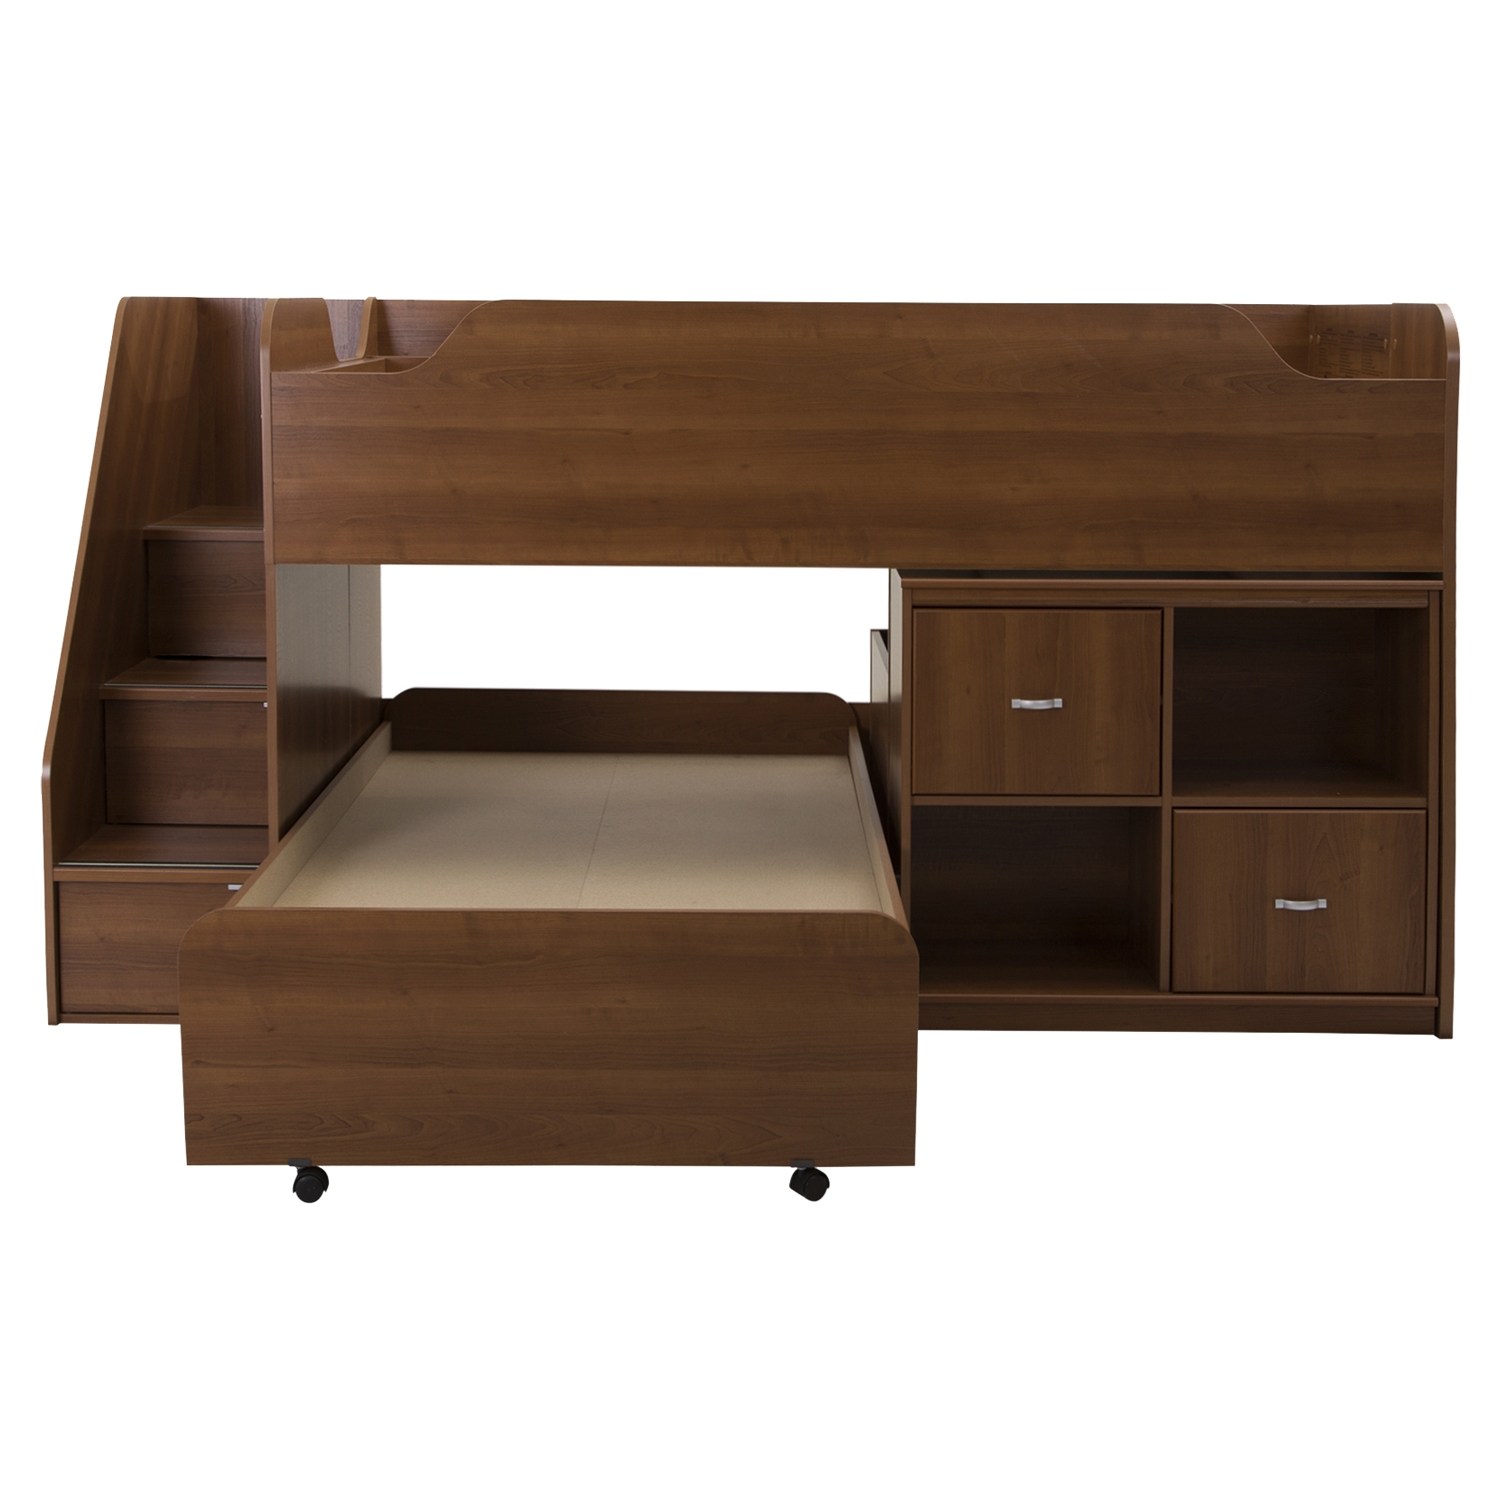 Mobby Twin Loft Bed with Stairs - Trundle, Storage Unit, Morgan Cherry - SS-9055A3